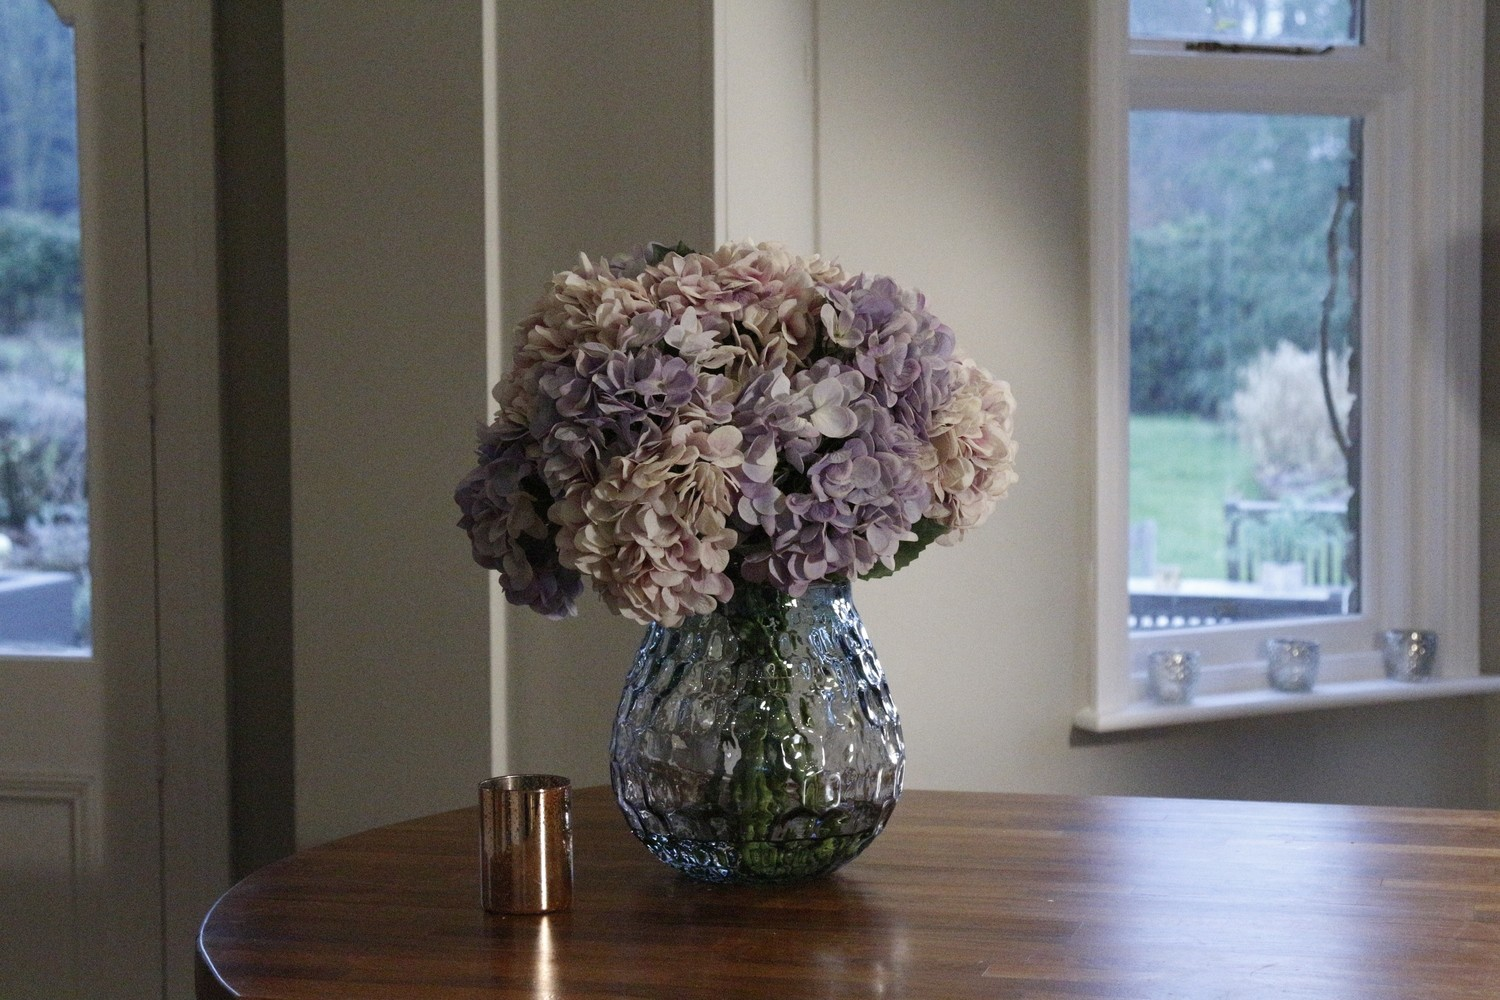 Ball of Hydrangeas in a Large Textured Coral Vase- Lilac and Pink